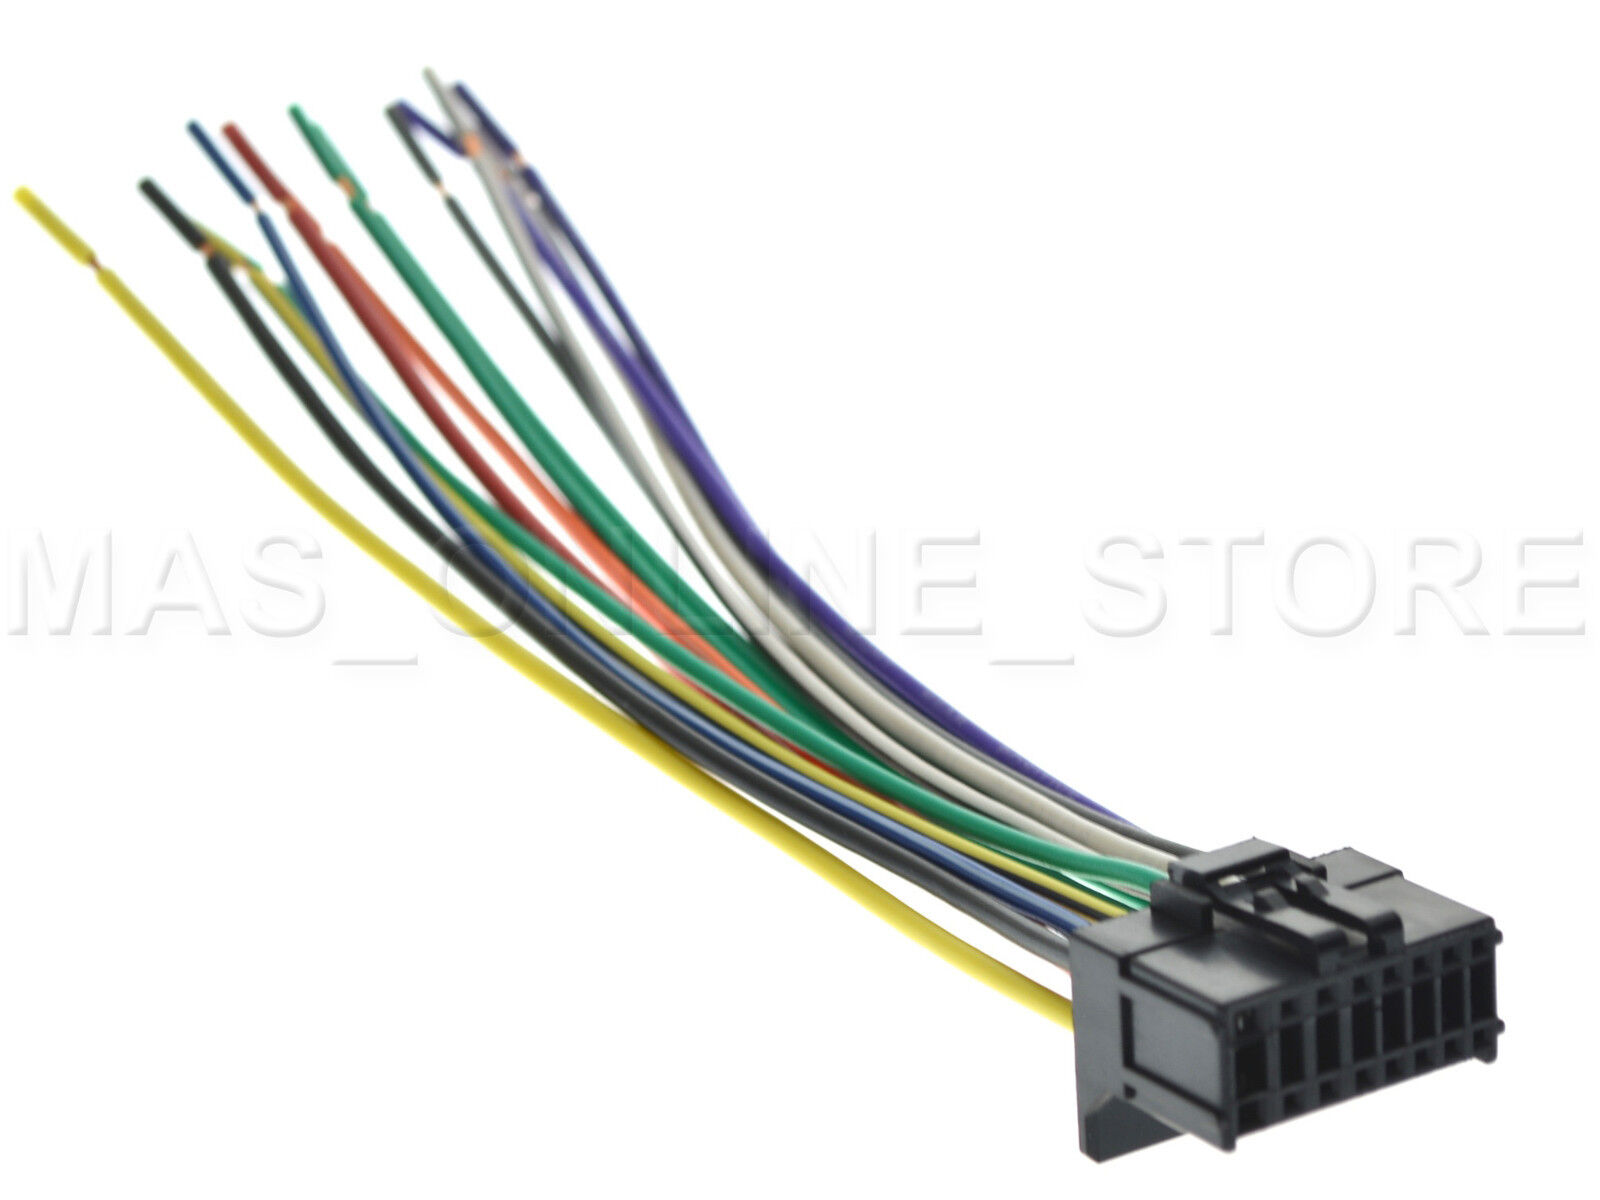 Wire Harness For Pioneer Avic X910bt Avicx910bt Pay Today Ships F900bt Wiring Diagram In Addition On Norton Secured Powered By Verisign